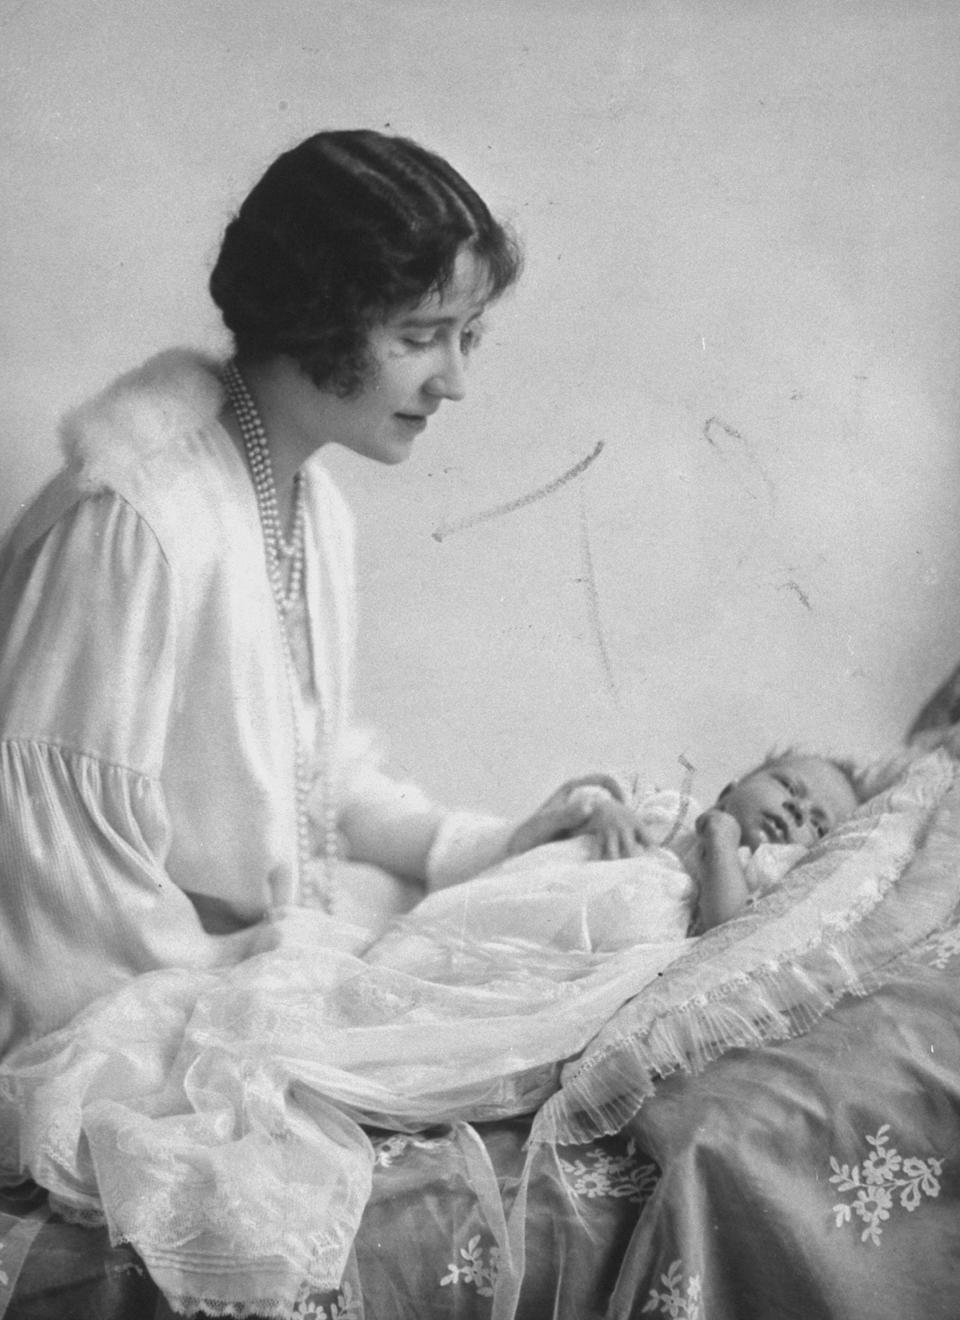 Portrait of Duchess of York (future Queen Mother) w. newborn daughter Princess Elizabeth  (Photo by Time Life Pictures/Pictures Inc./The LIFE Picture Collection via Getty Images)